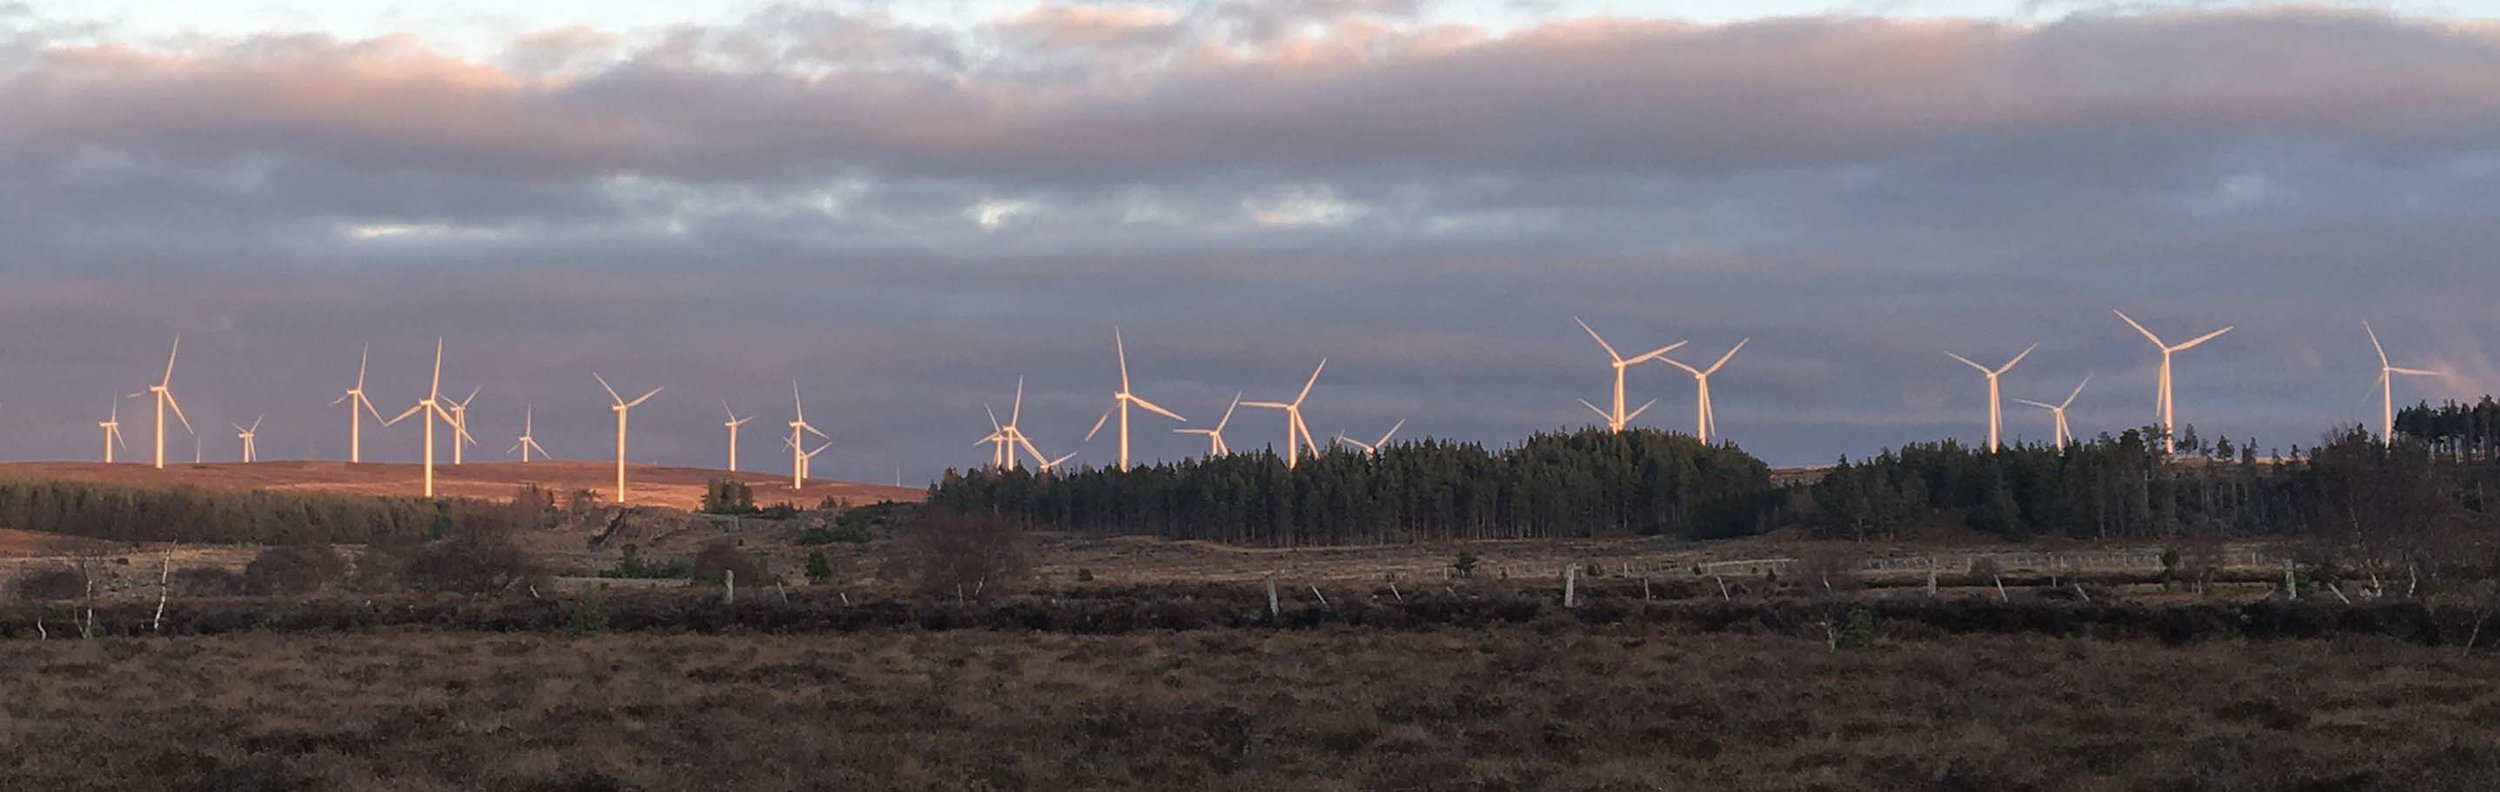 Rothes 1 & 2 due to be extended by 28 more turbines up to 224m tall right next door to Clashgour